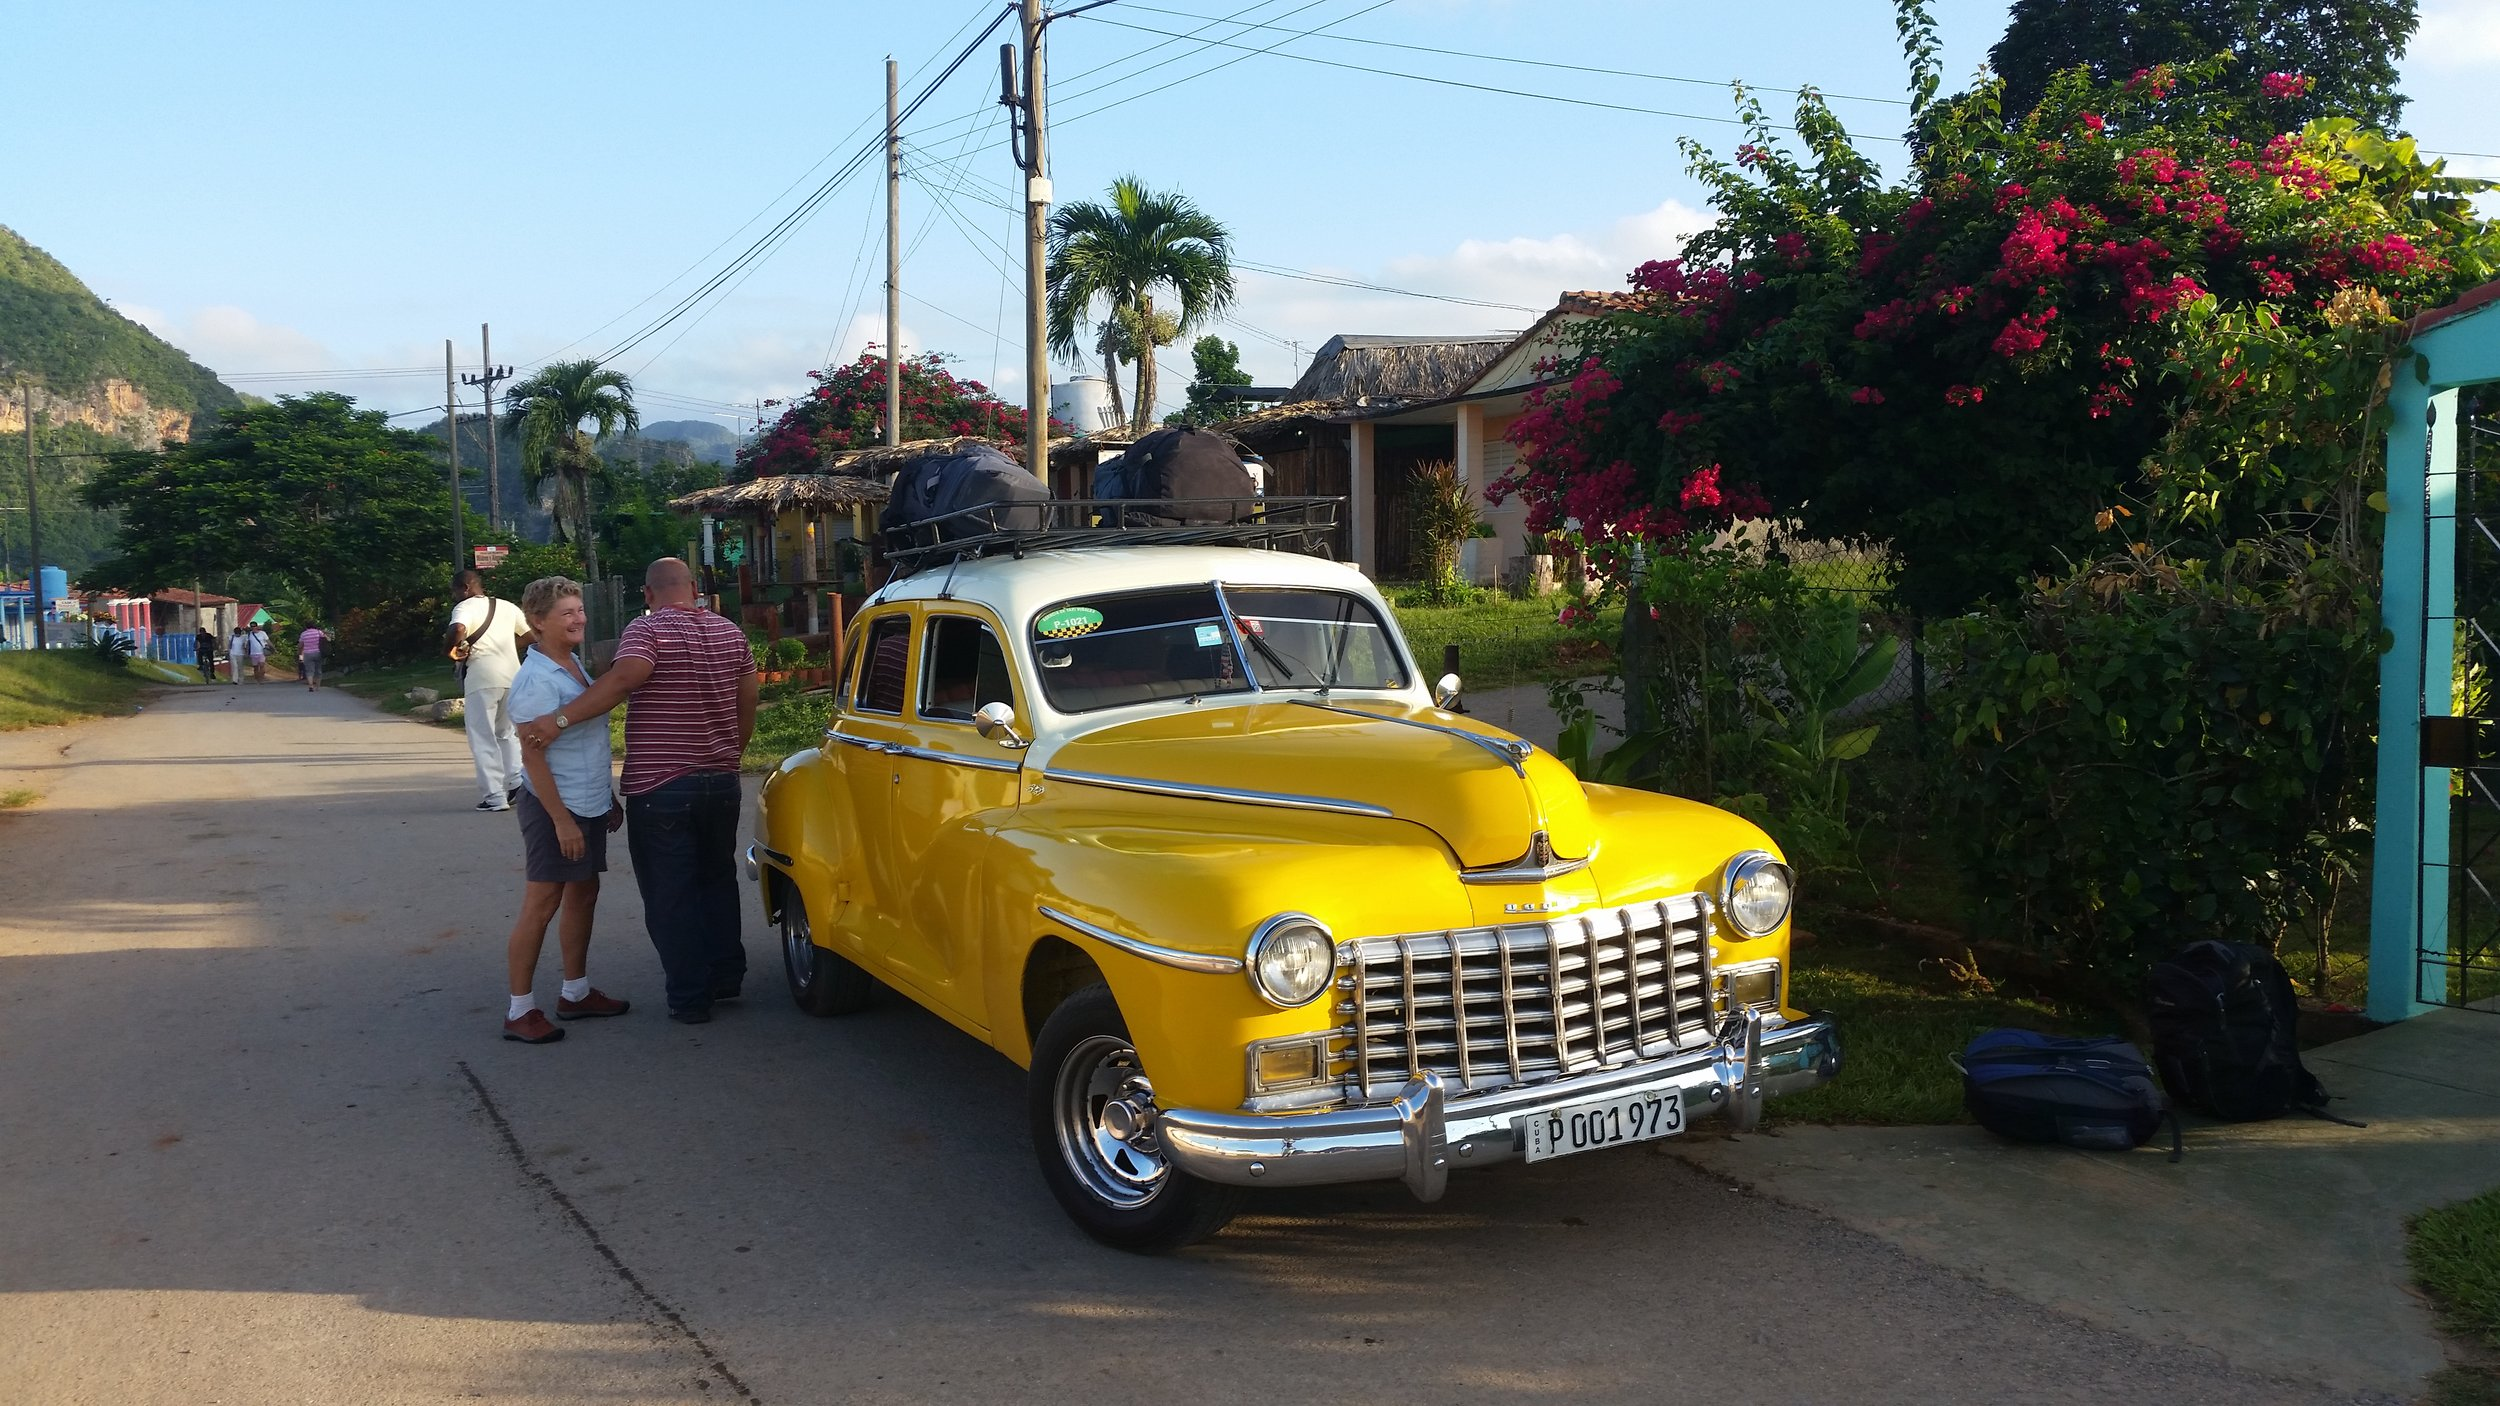 this was the collective taxi that our casa organised from Viñales to Havana - a 1948 dodge.